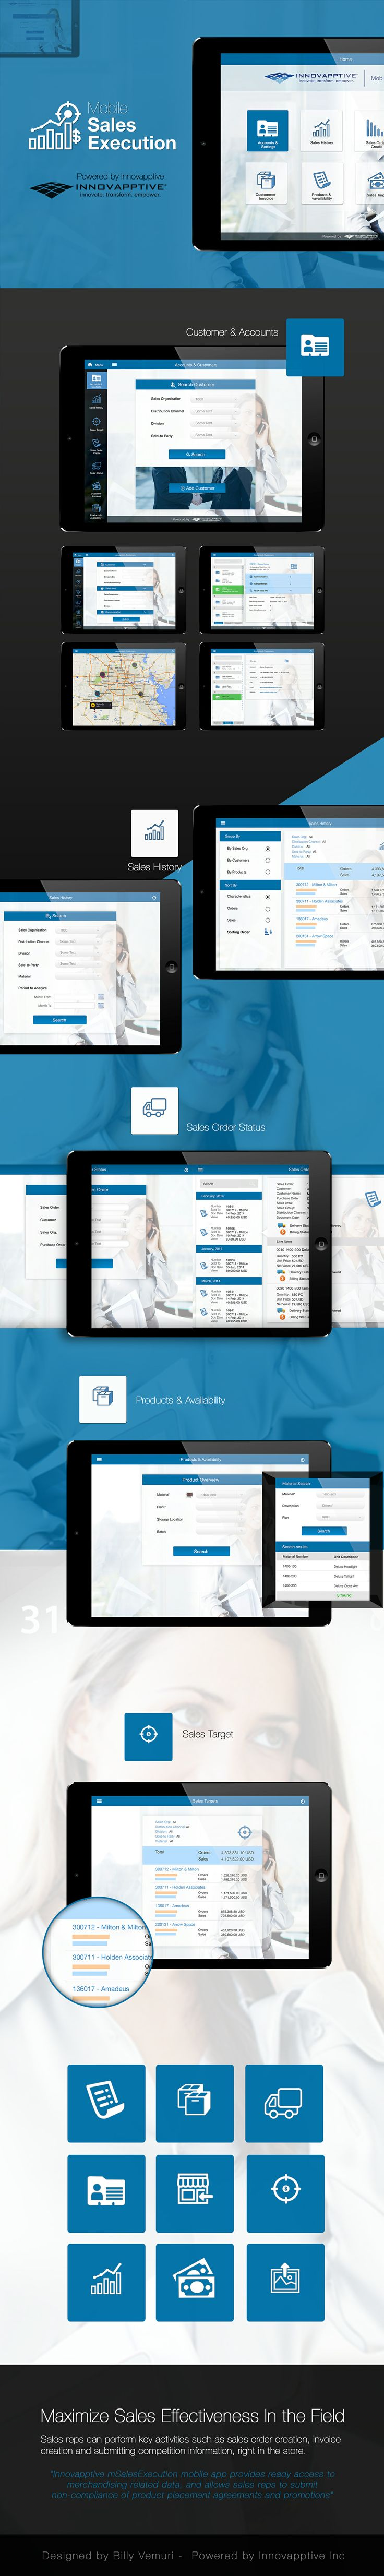 Mobile Sales Execution App - mSalesX - designed by Billy Vemuri -  Powered by Innovapptive Inc.